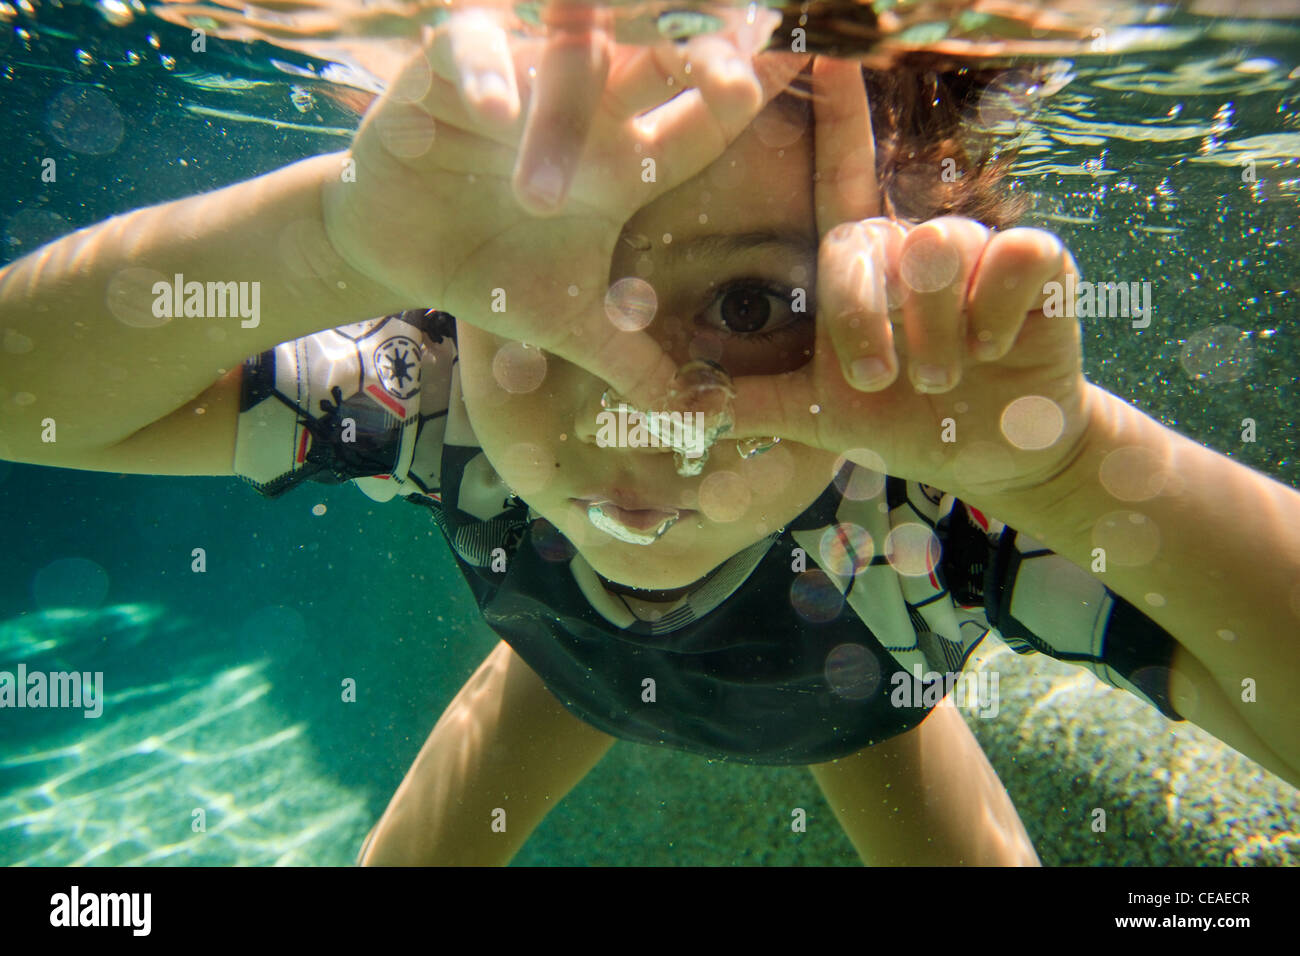 Playing in a back yard swimming pool in Cairns, far north Queensland, Australia - Stock Image